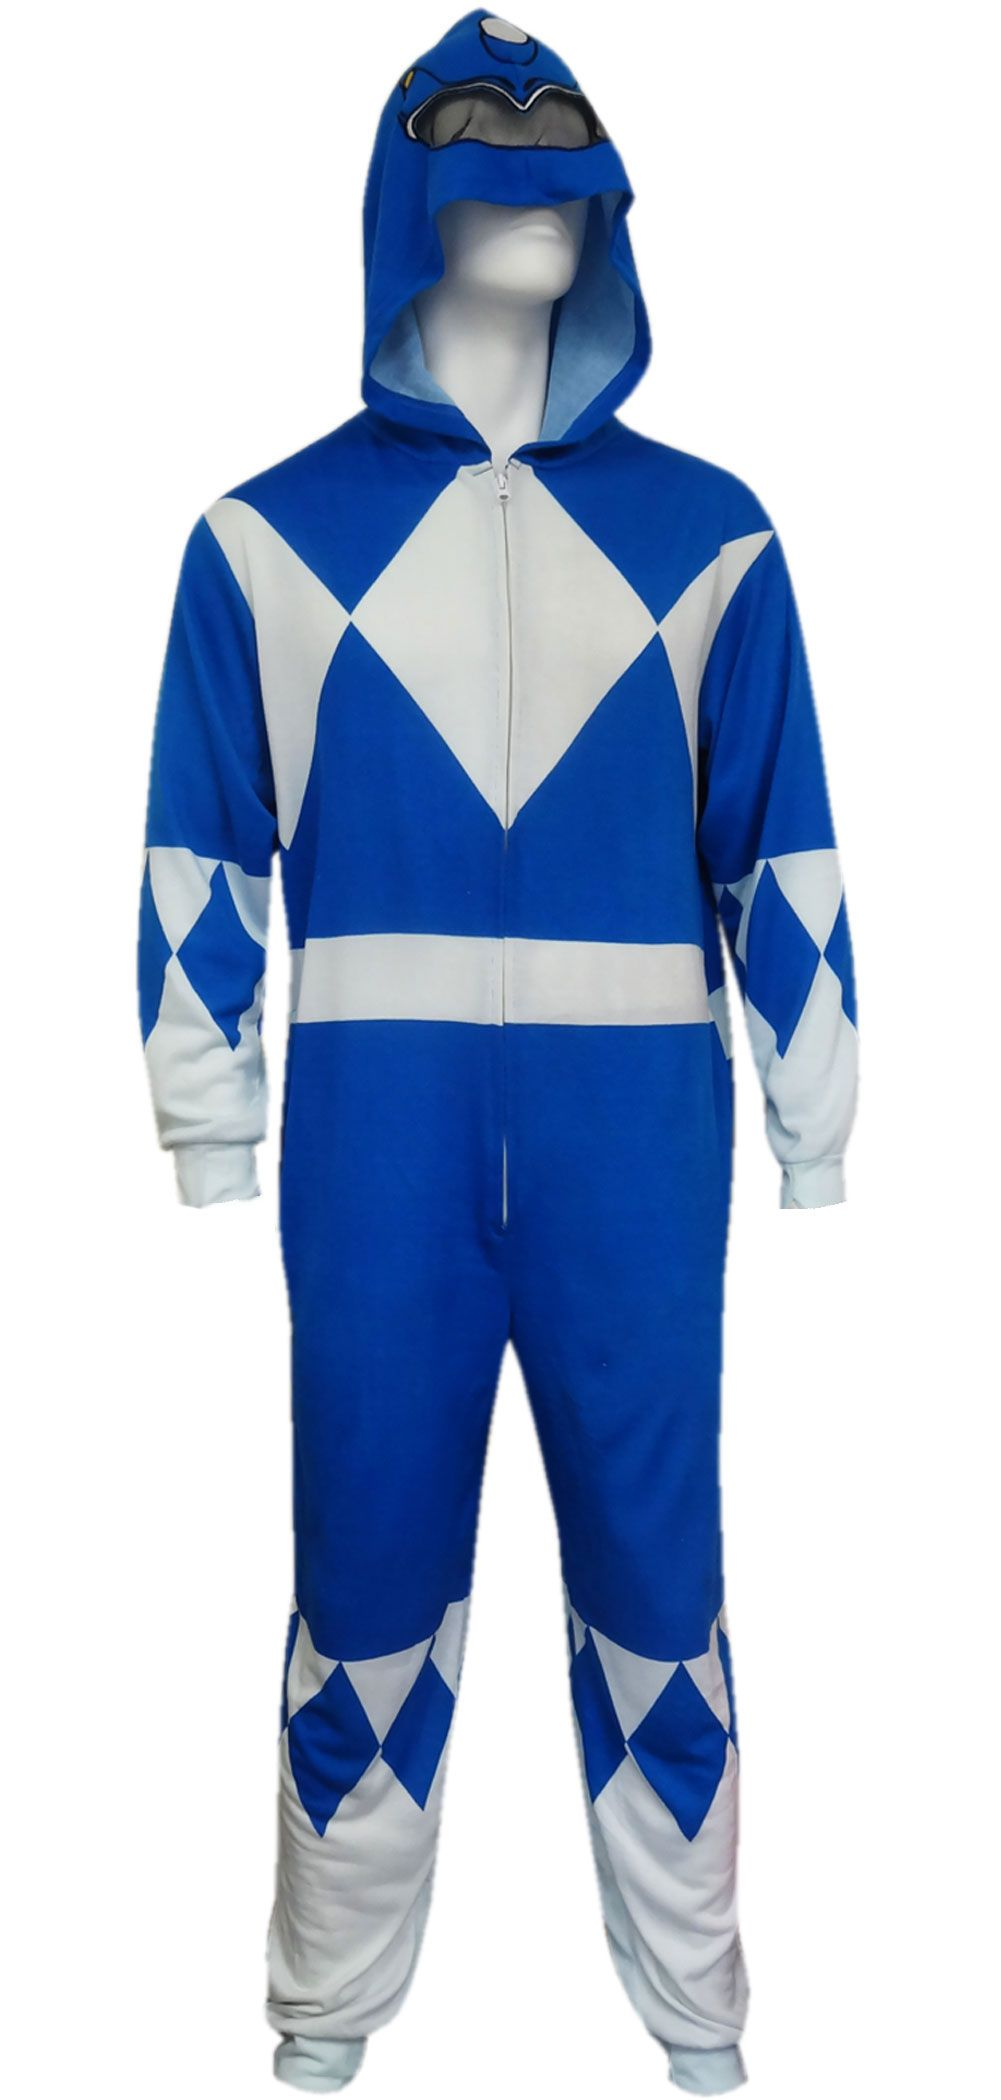 6d8e140614 Mighty Morphin Power Rangers Blue Ranger Onesie Pajama